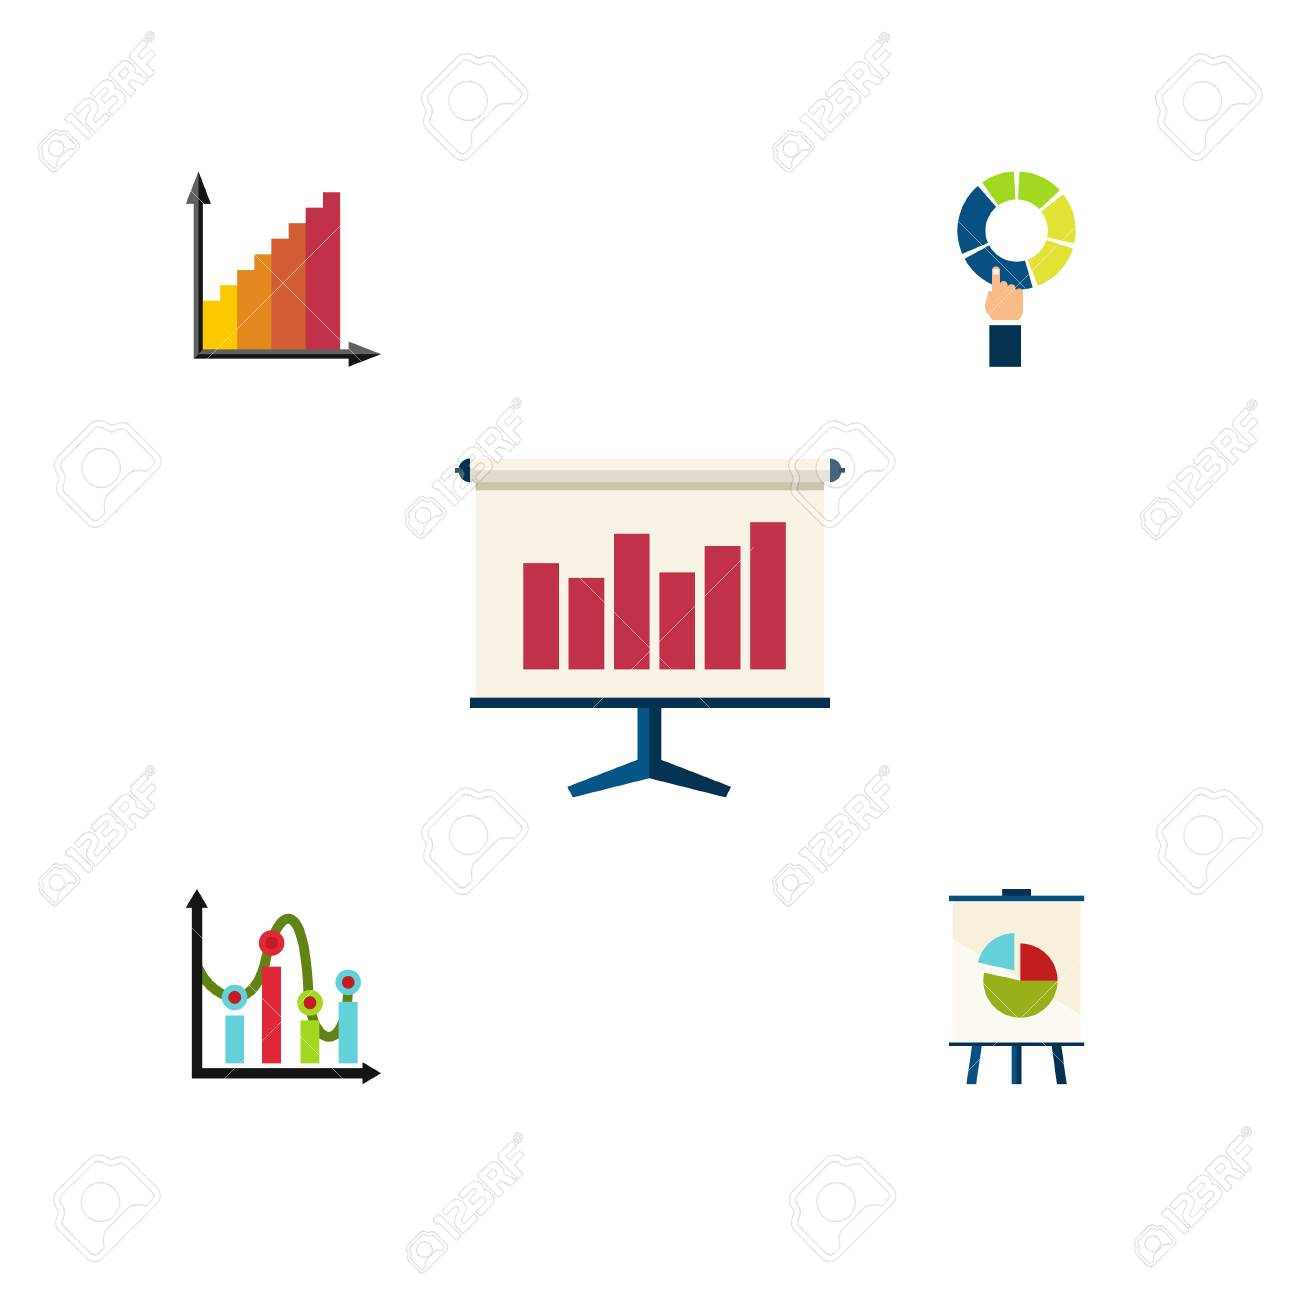 flat icon diagram set of chart, monitoring, pie bar and other vector  objects